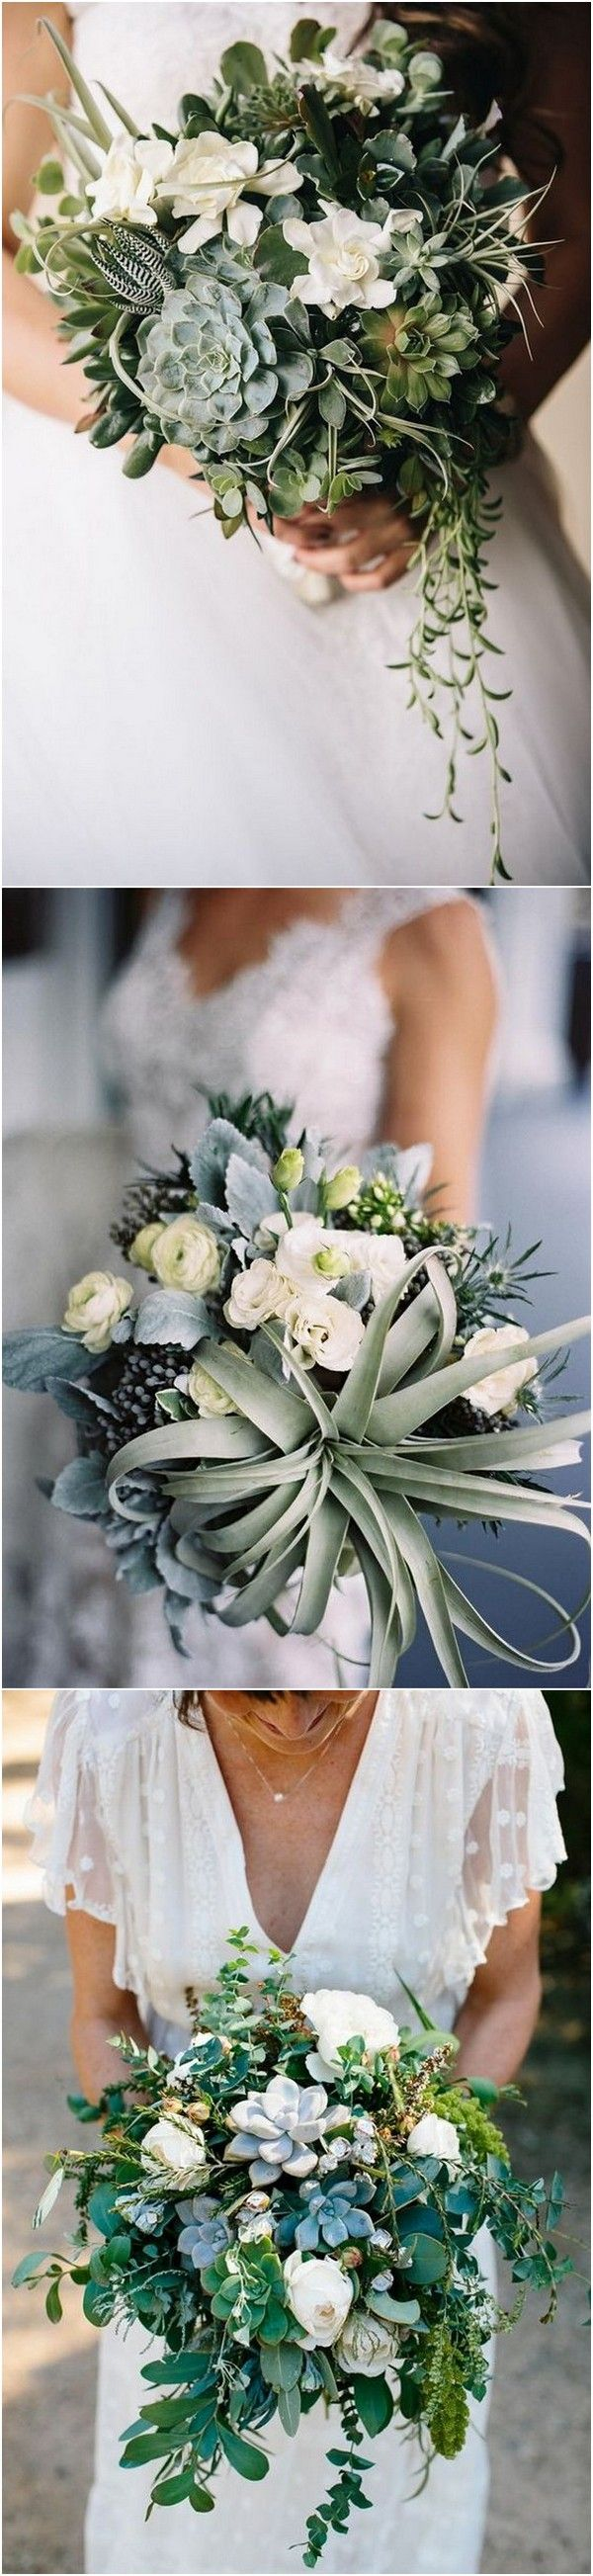 Trending wedding bouquet ideas with succulents for 2018 #weddingflowers #weddingbouquets #weddingideas #weddingtrends